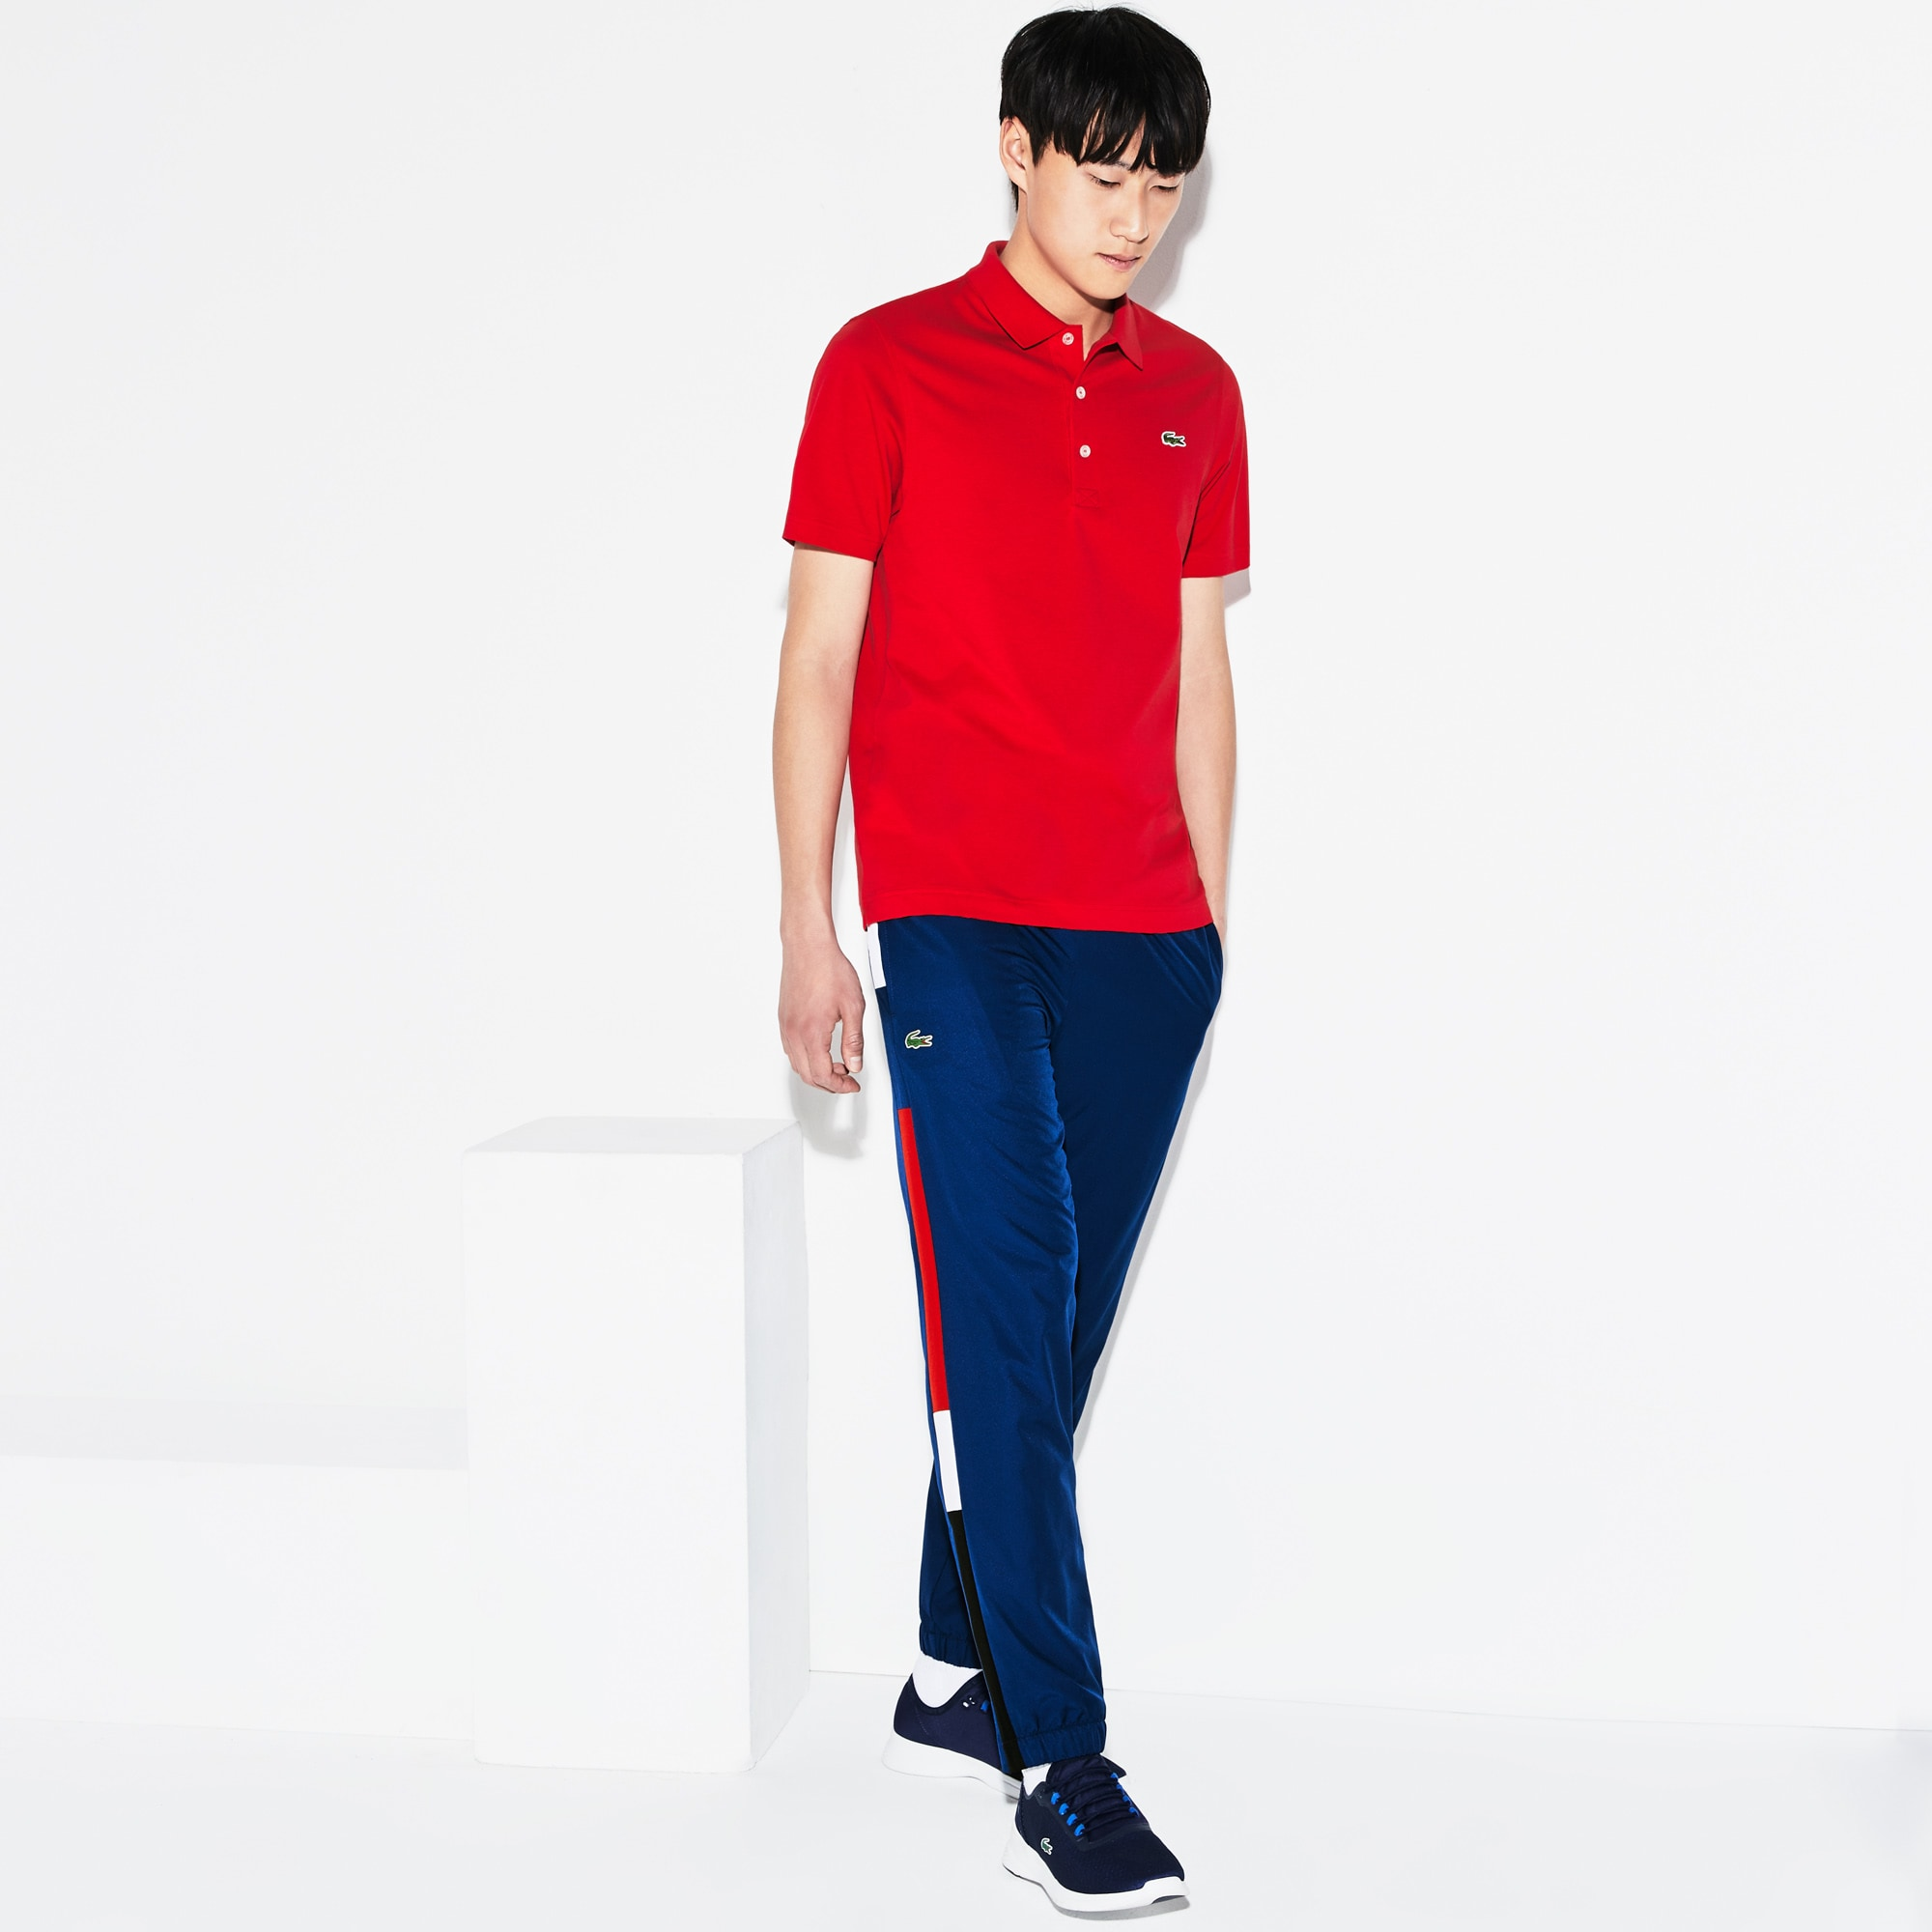 Pantalon de survêtement Tennis Lacoste SPORT avec bande color block